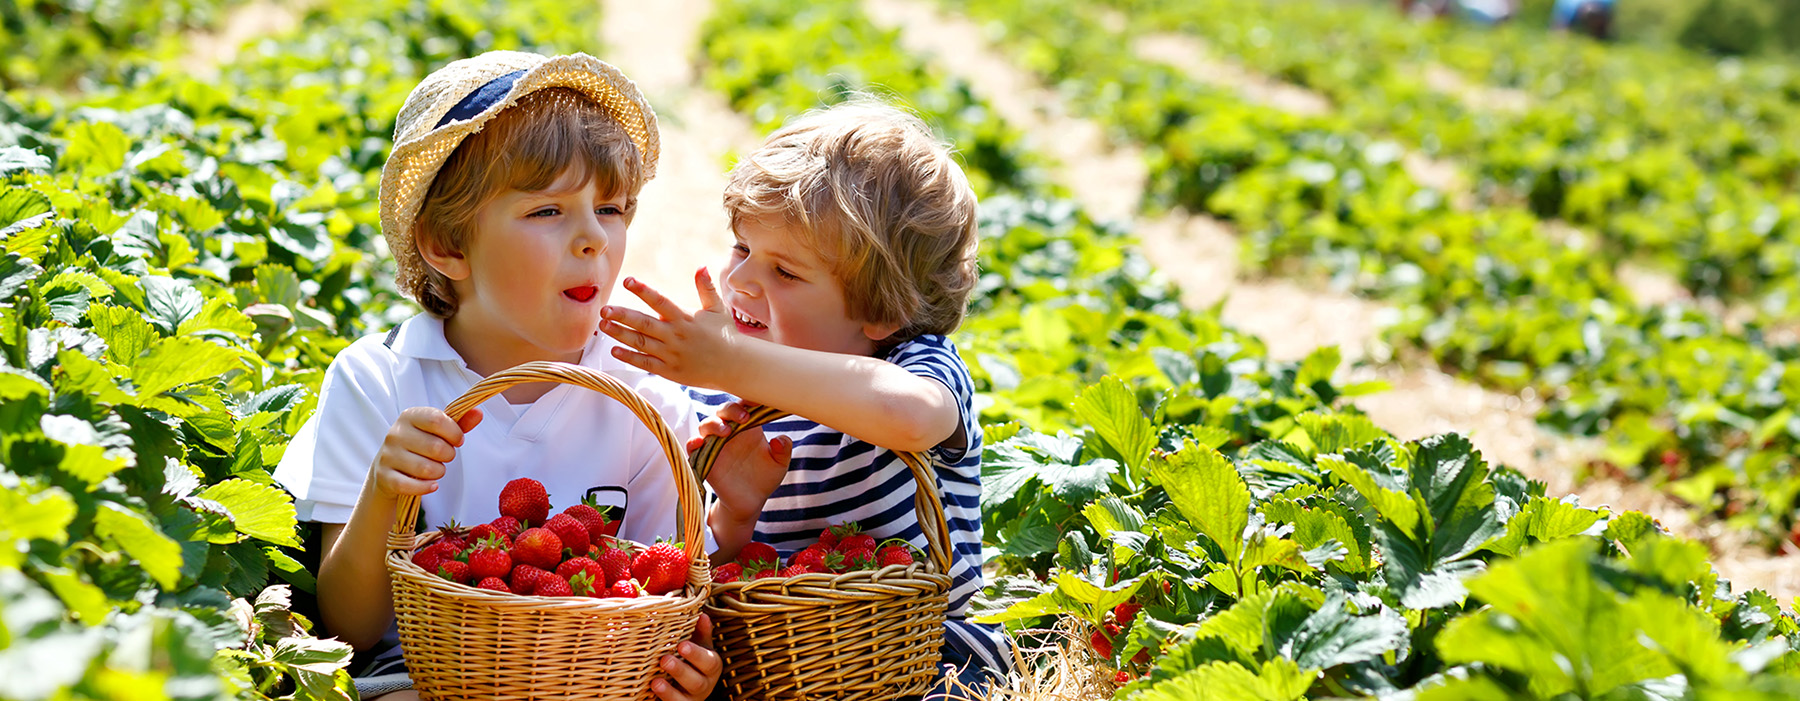 Two kids picking strawberries in field